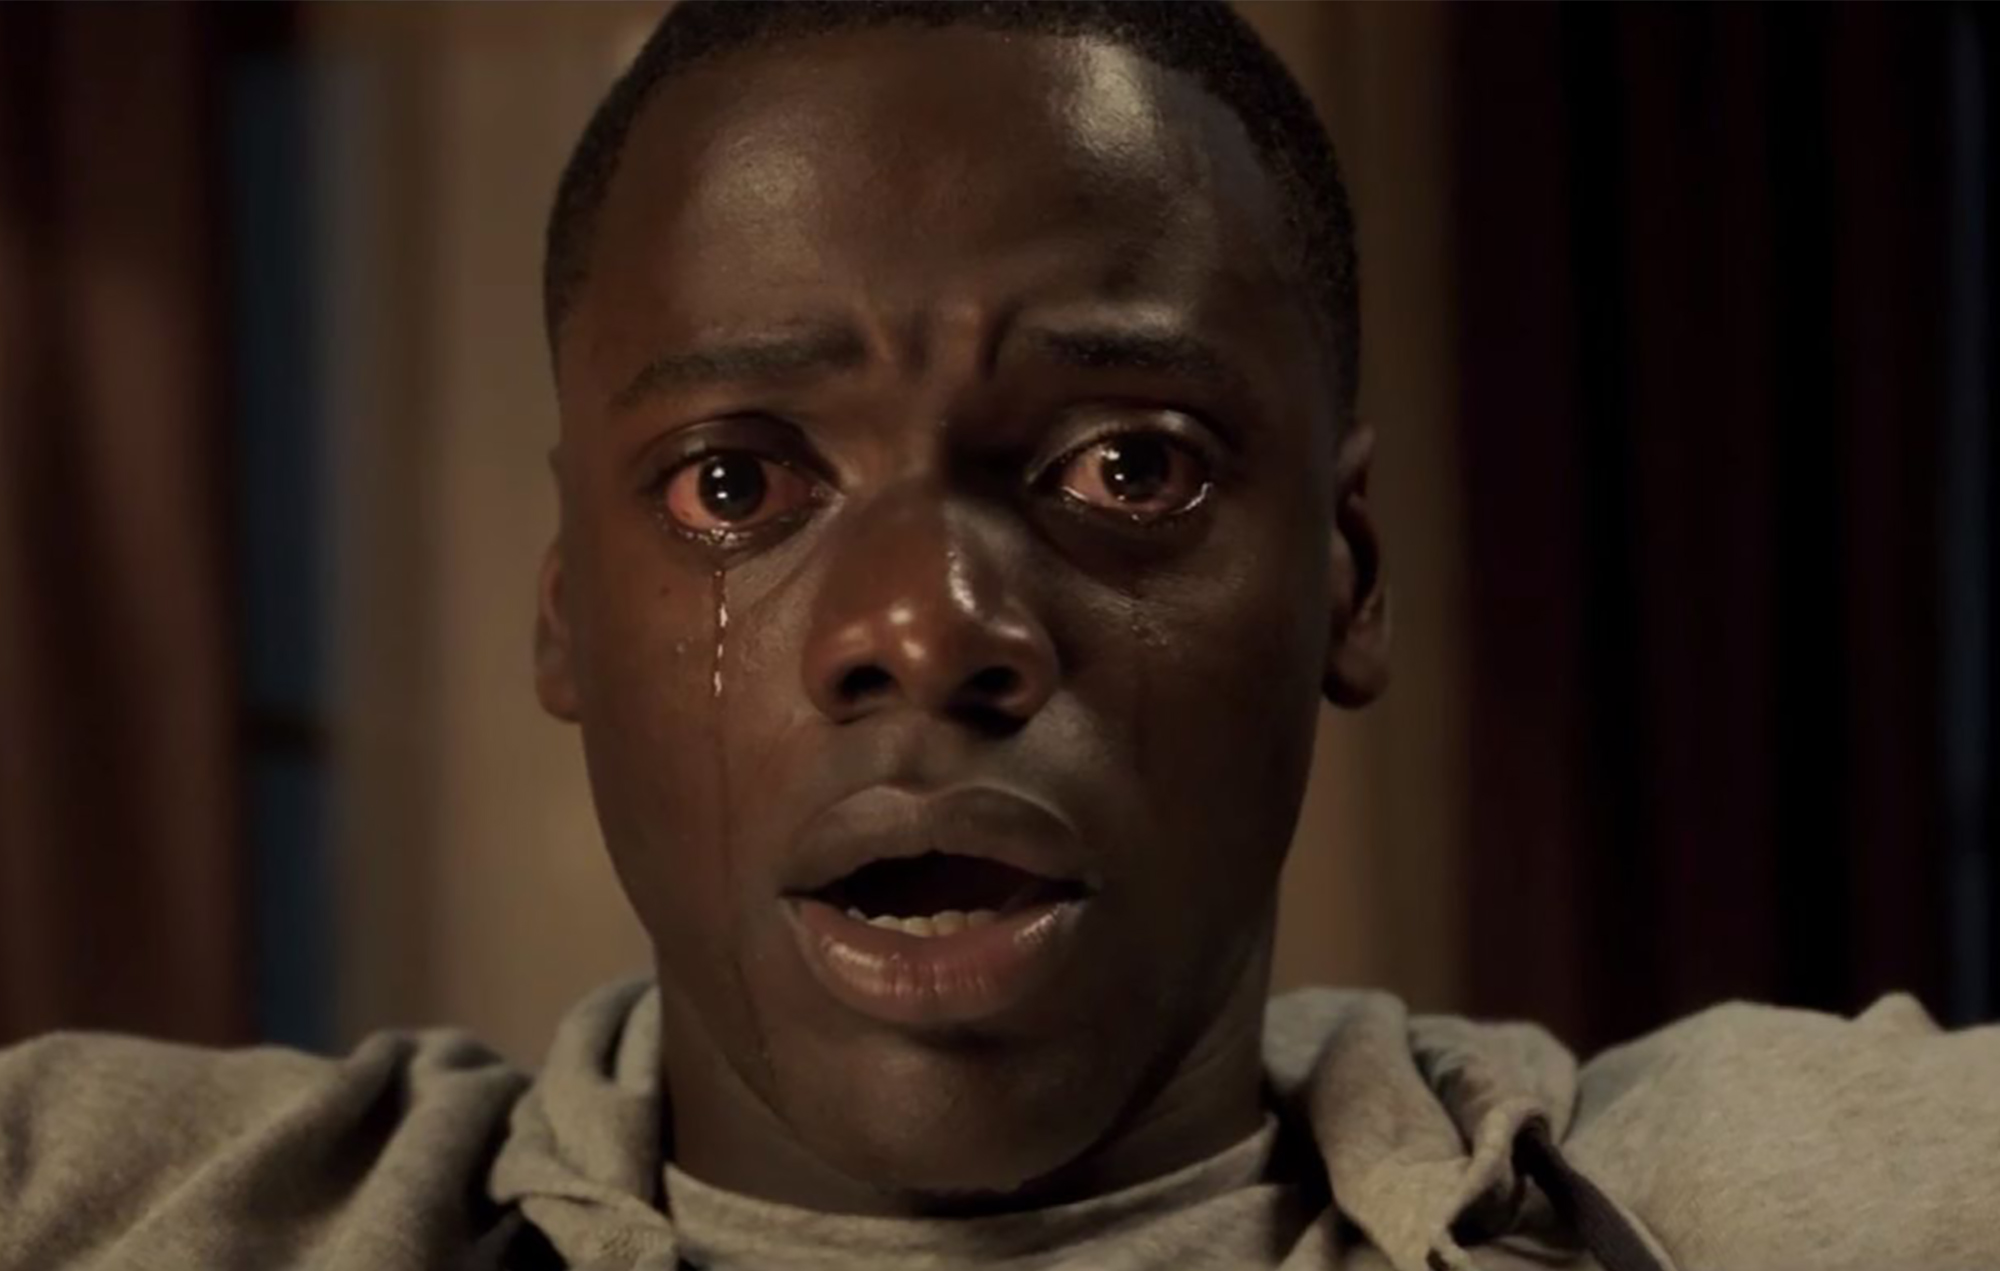 Daniel Kaluuya says he wasn't invited to 'Get Out' premiere